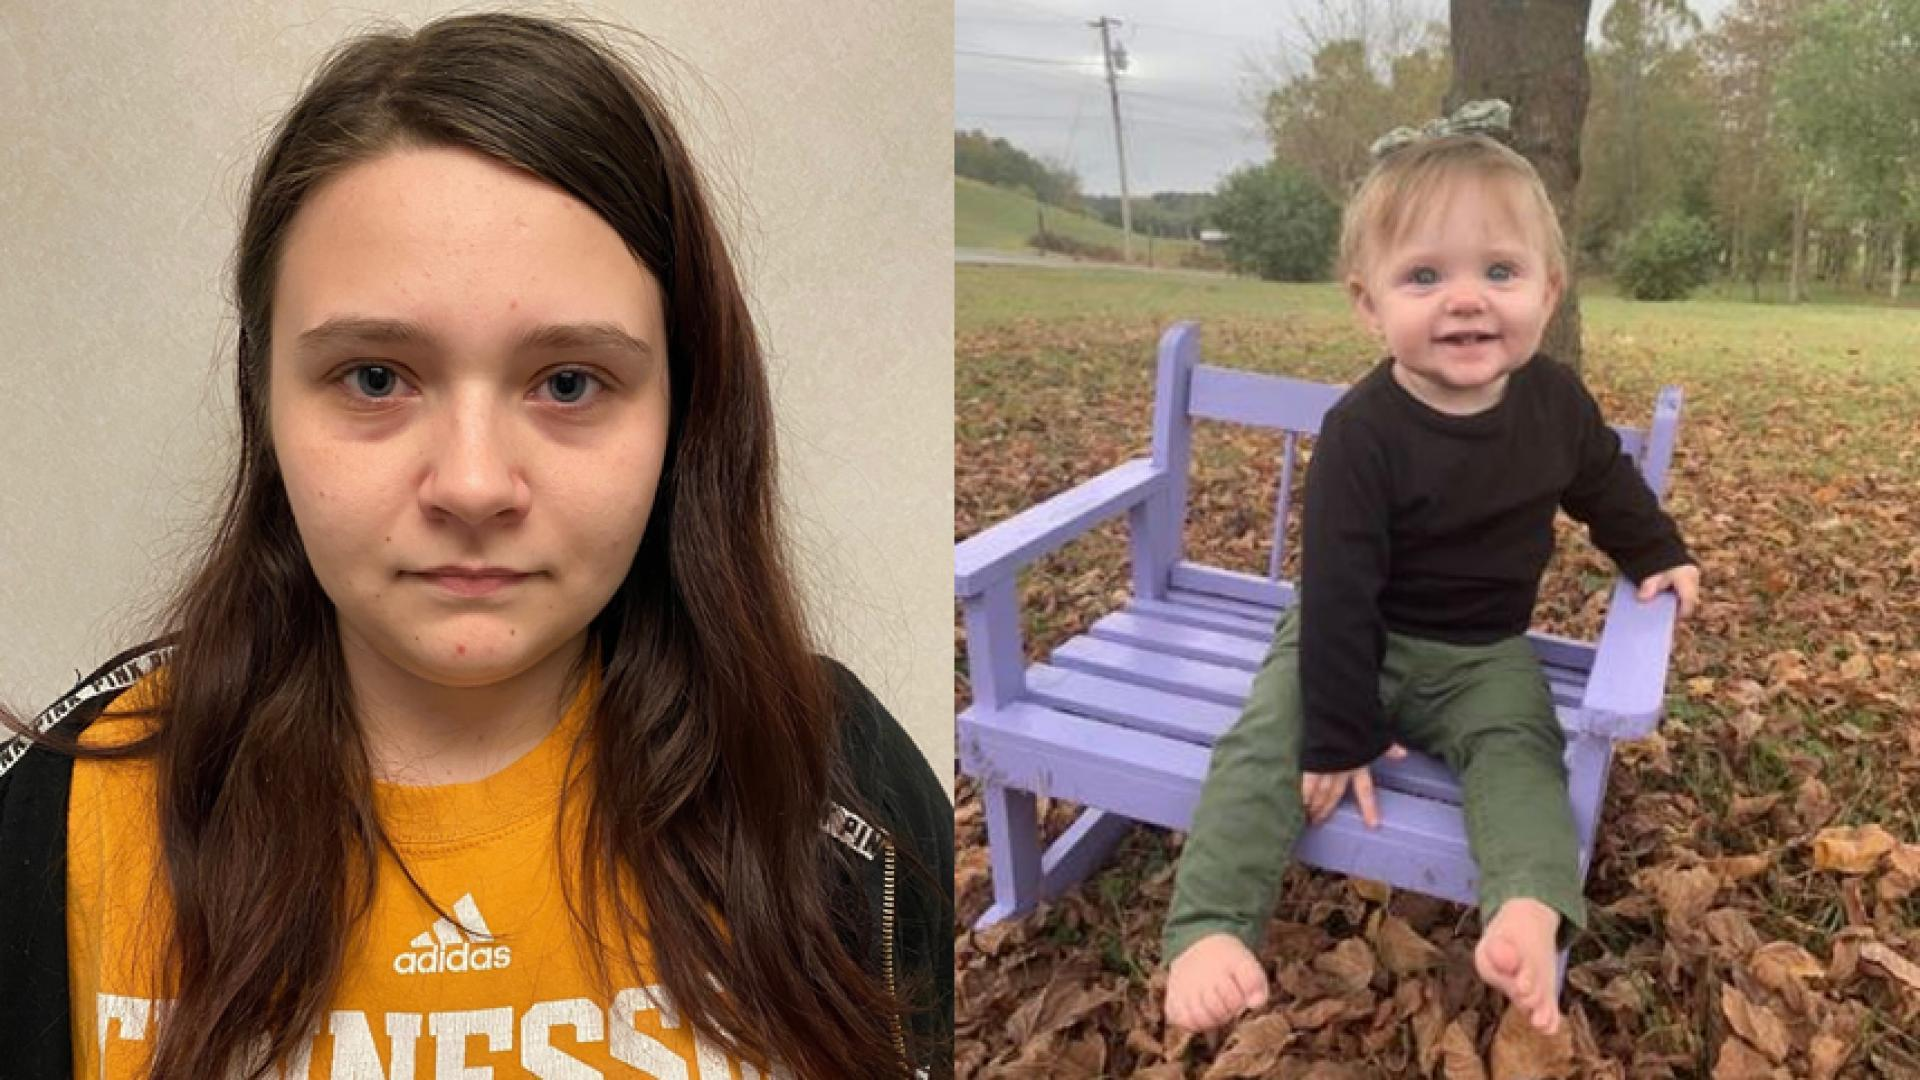 Tennessee mother of missing 15-month-old arrested, accused of lying to police